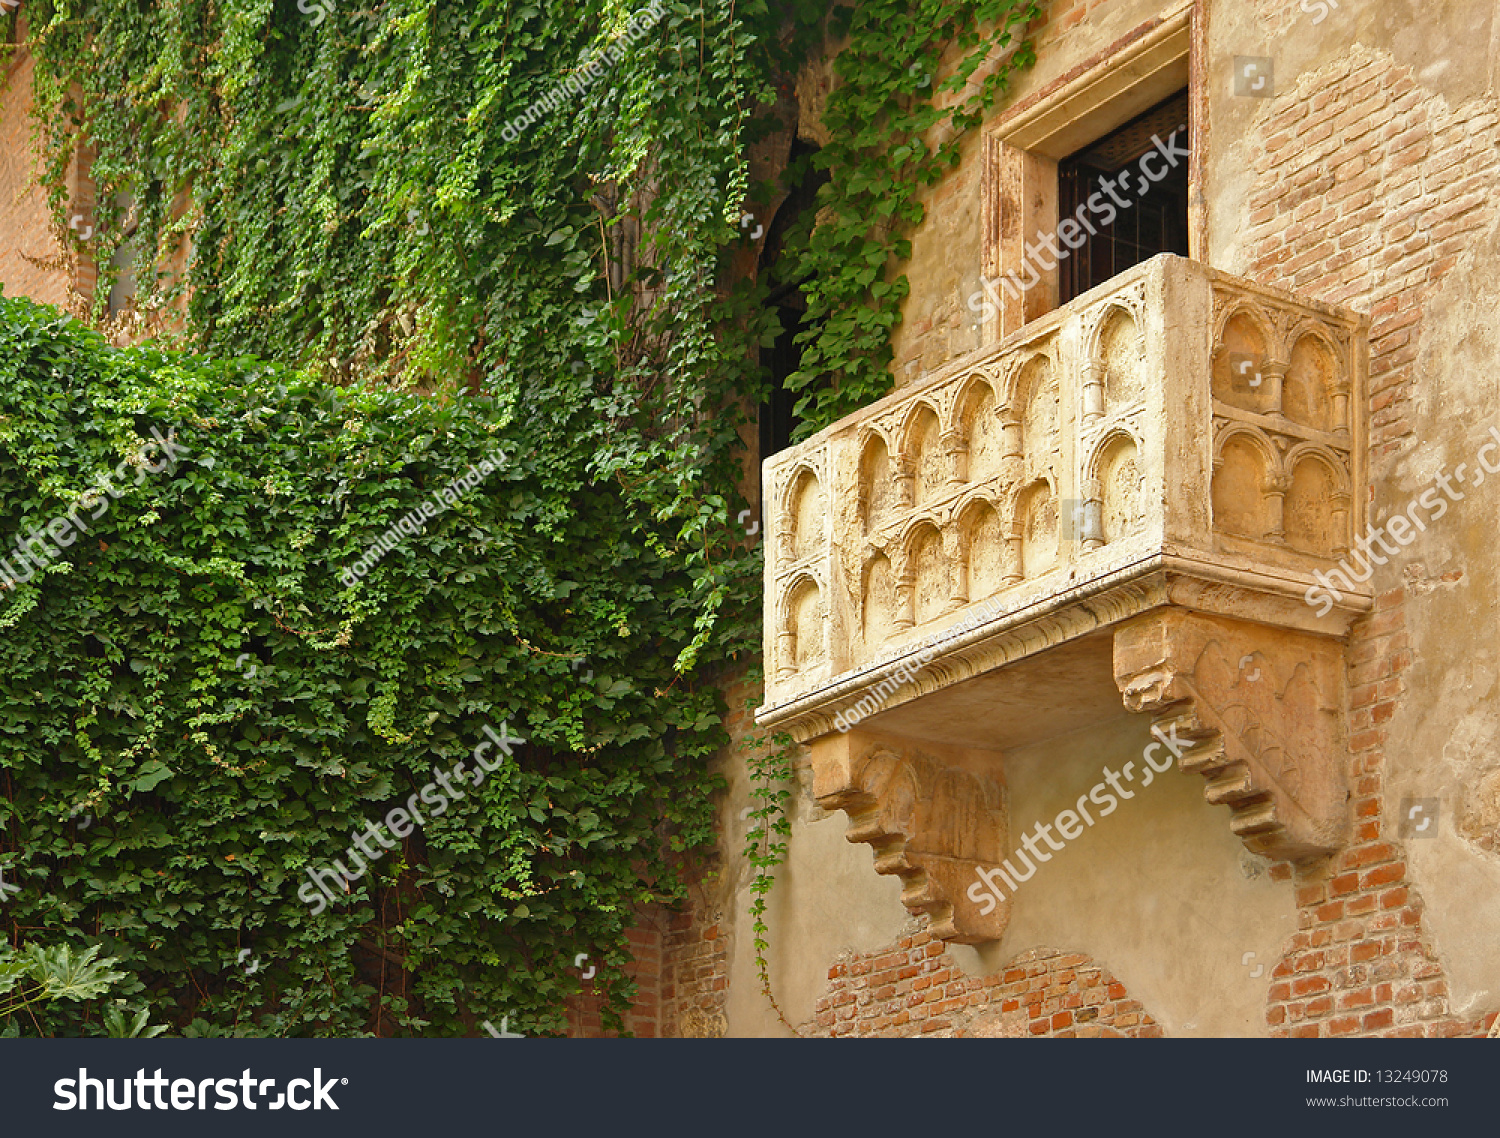 adversity and romeo and juliet Get an answer for 'what obstacles does juliet face during the course of shakespeare's romeo and juliet' and find homework help for other romeo and juliet questions at enotes.